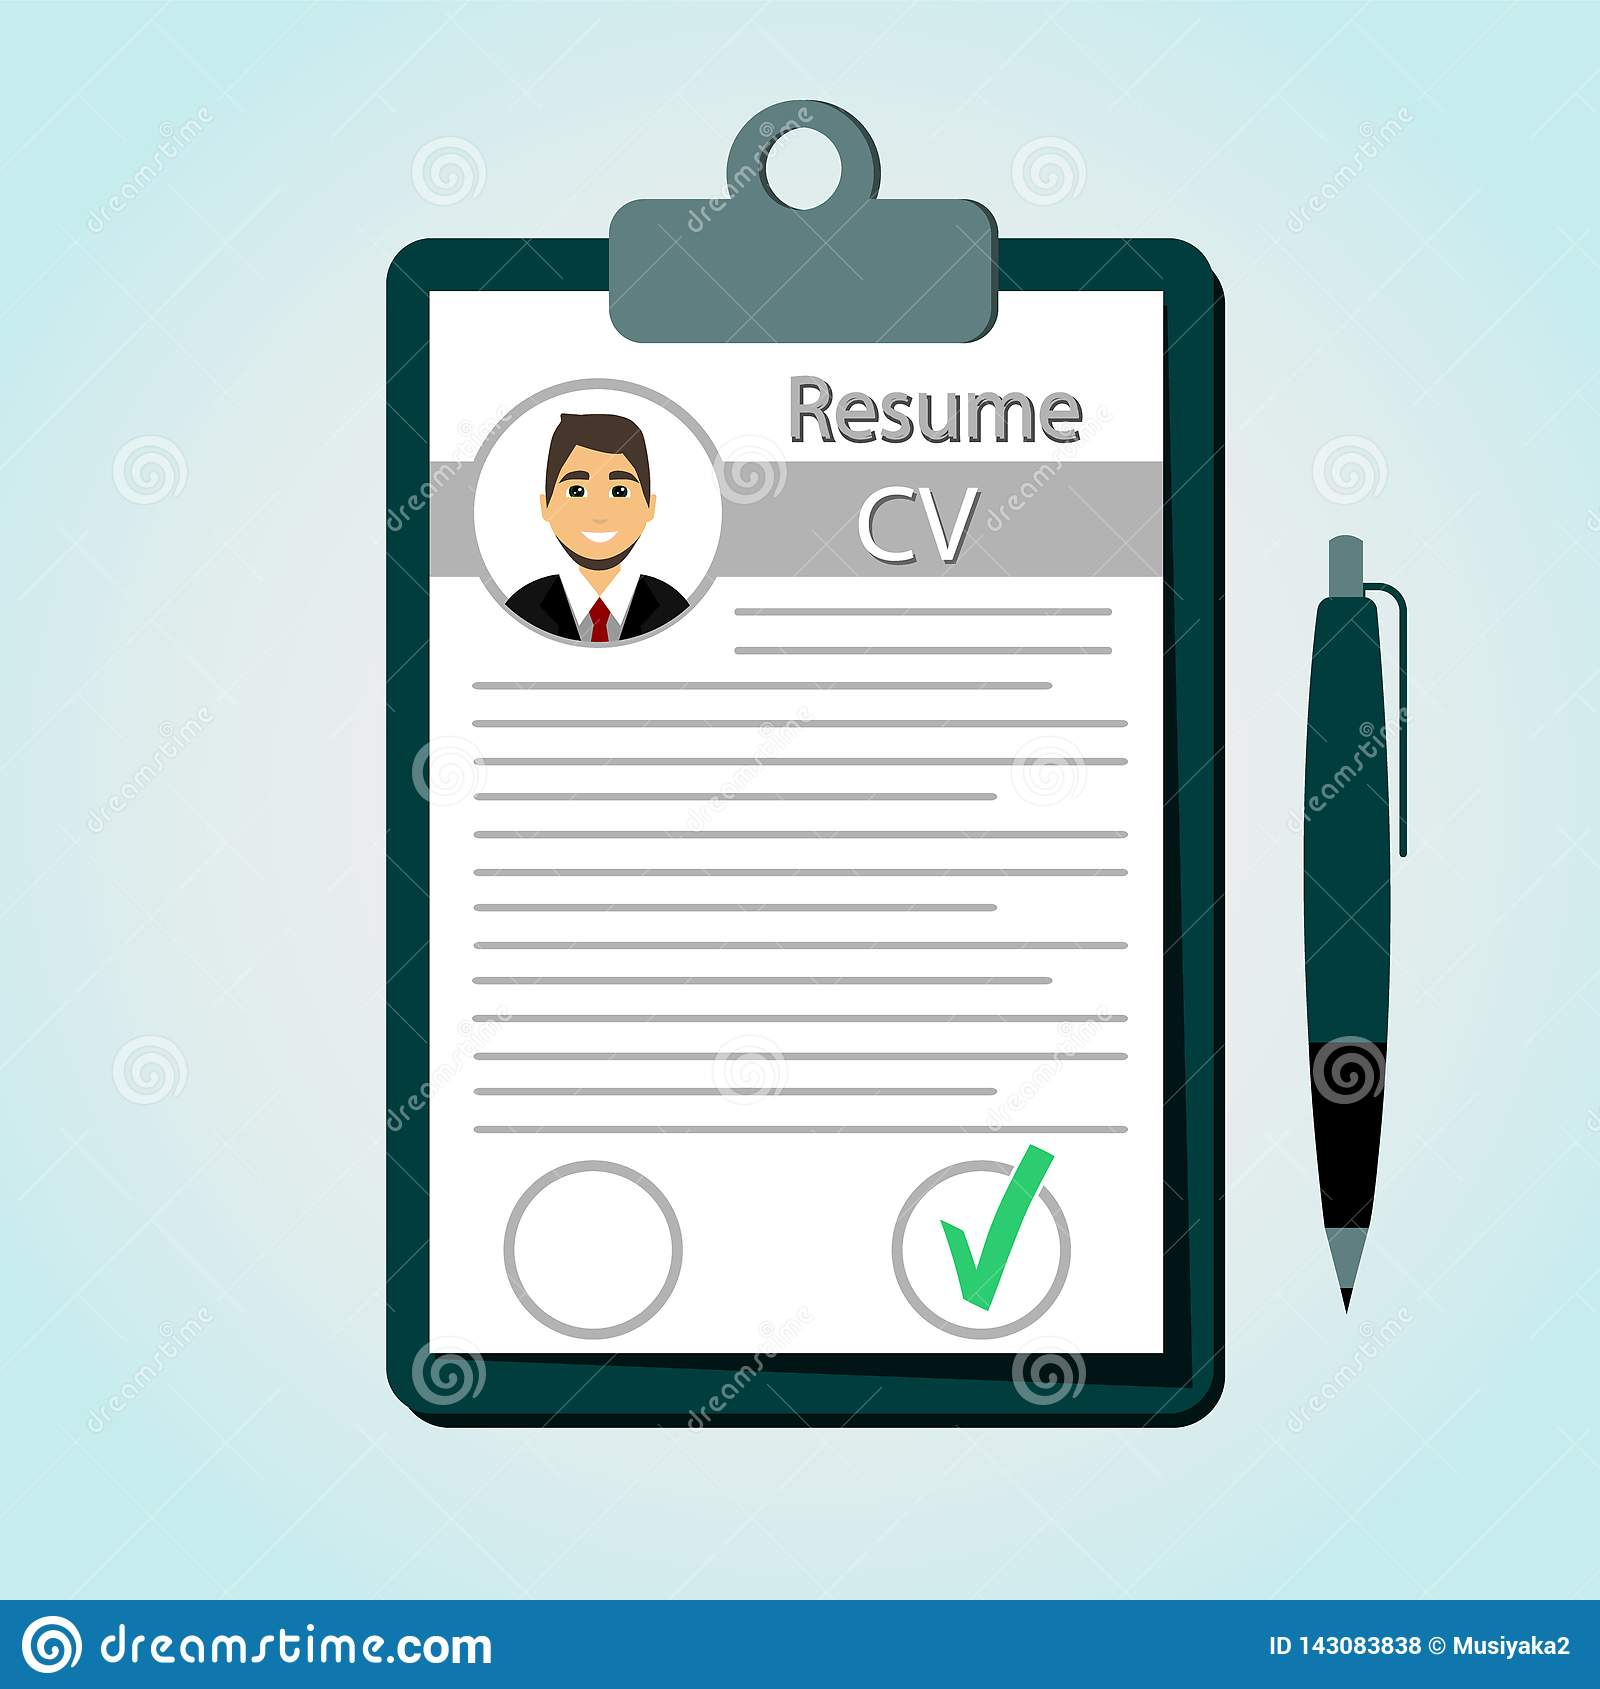 resume in a flat style  check resume  cv stock illustration